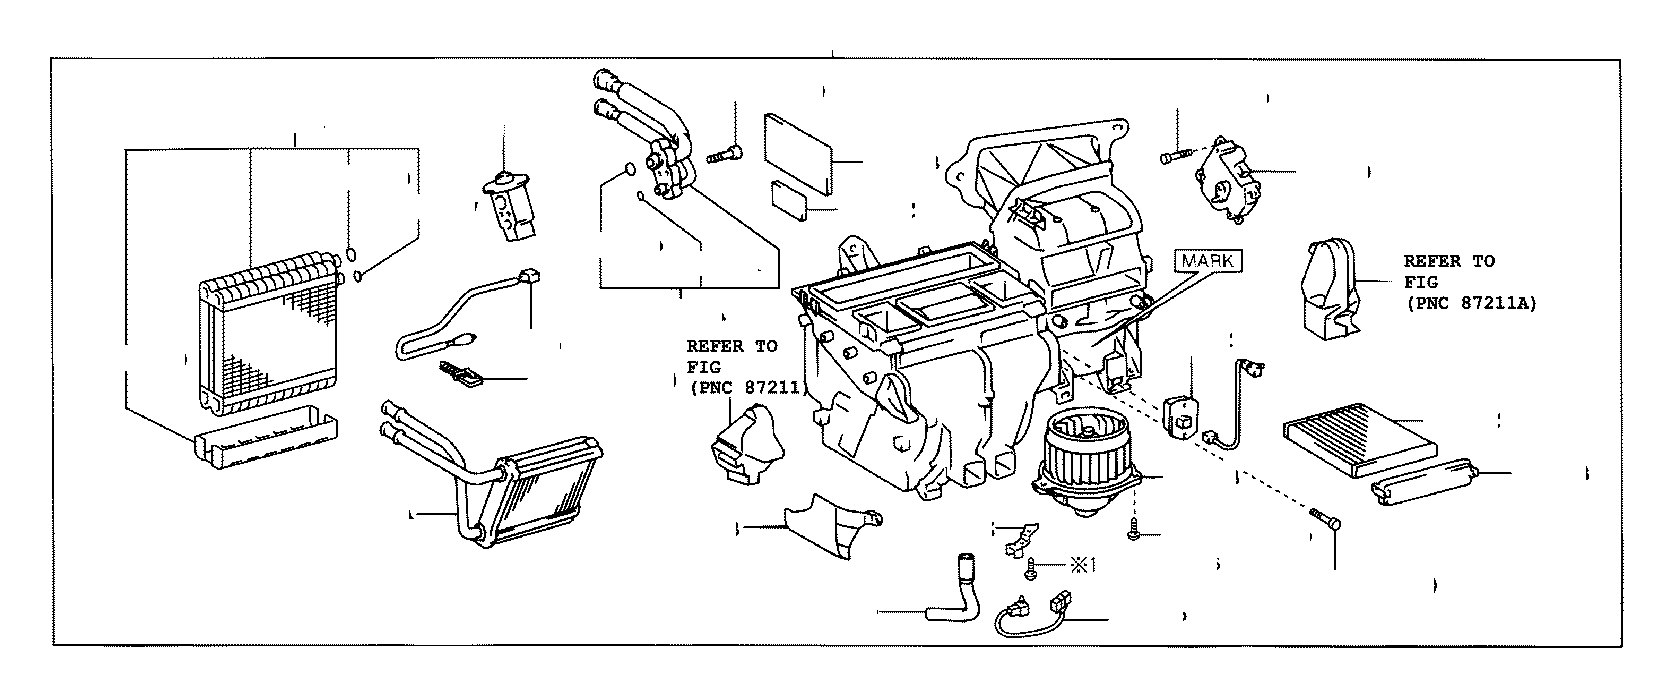 2003 Toyota Corolla A/c expansion valve. Valve, cooler